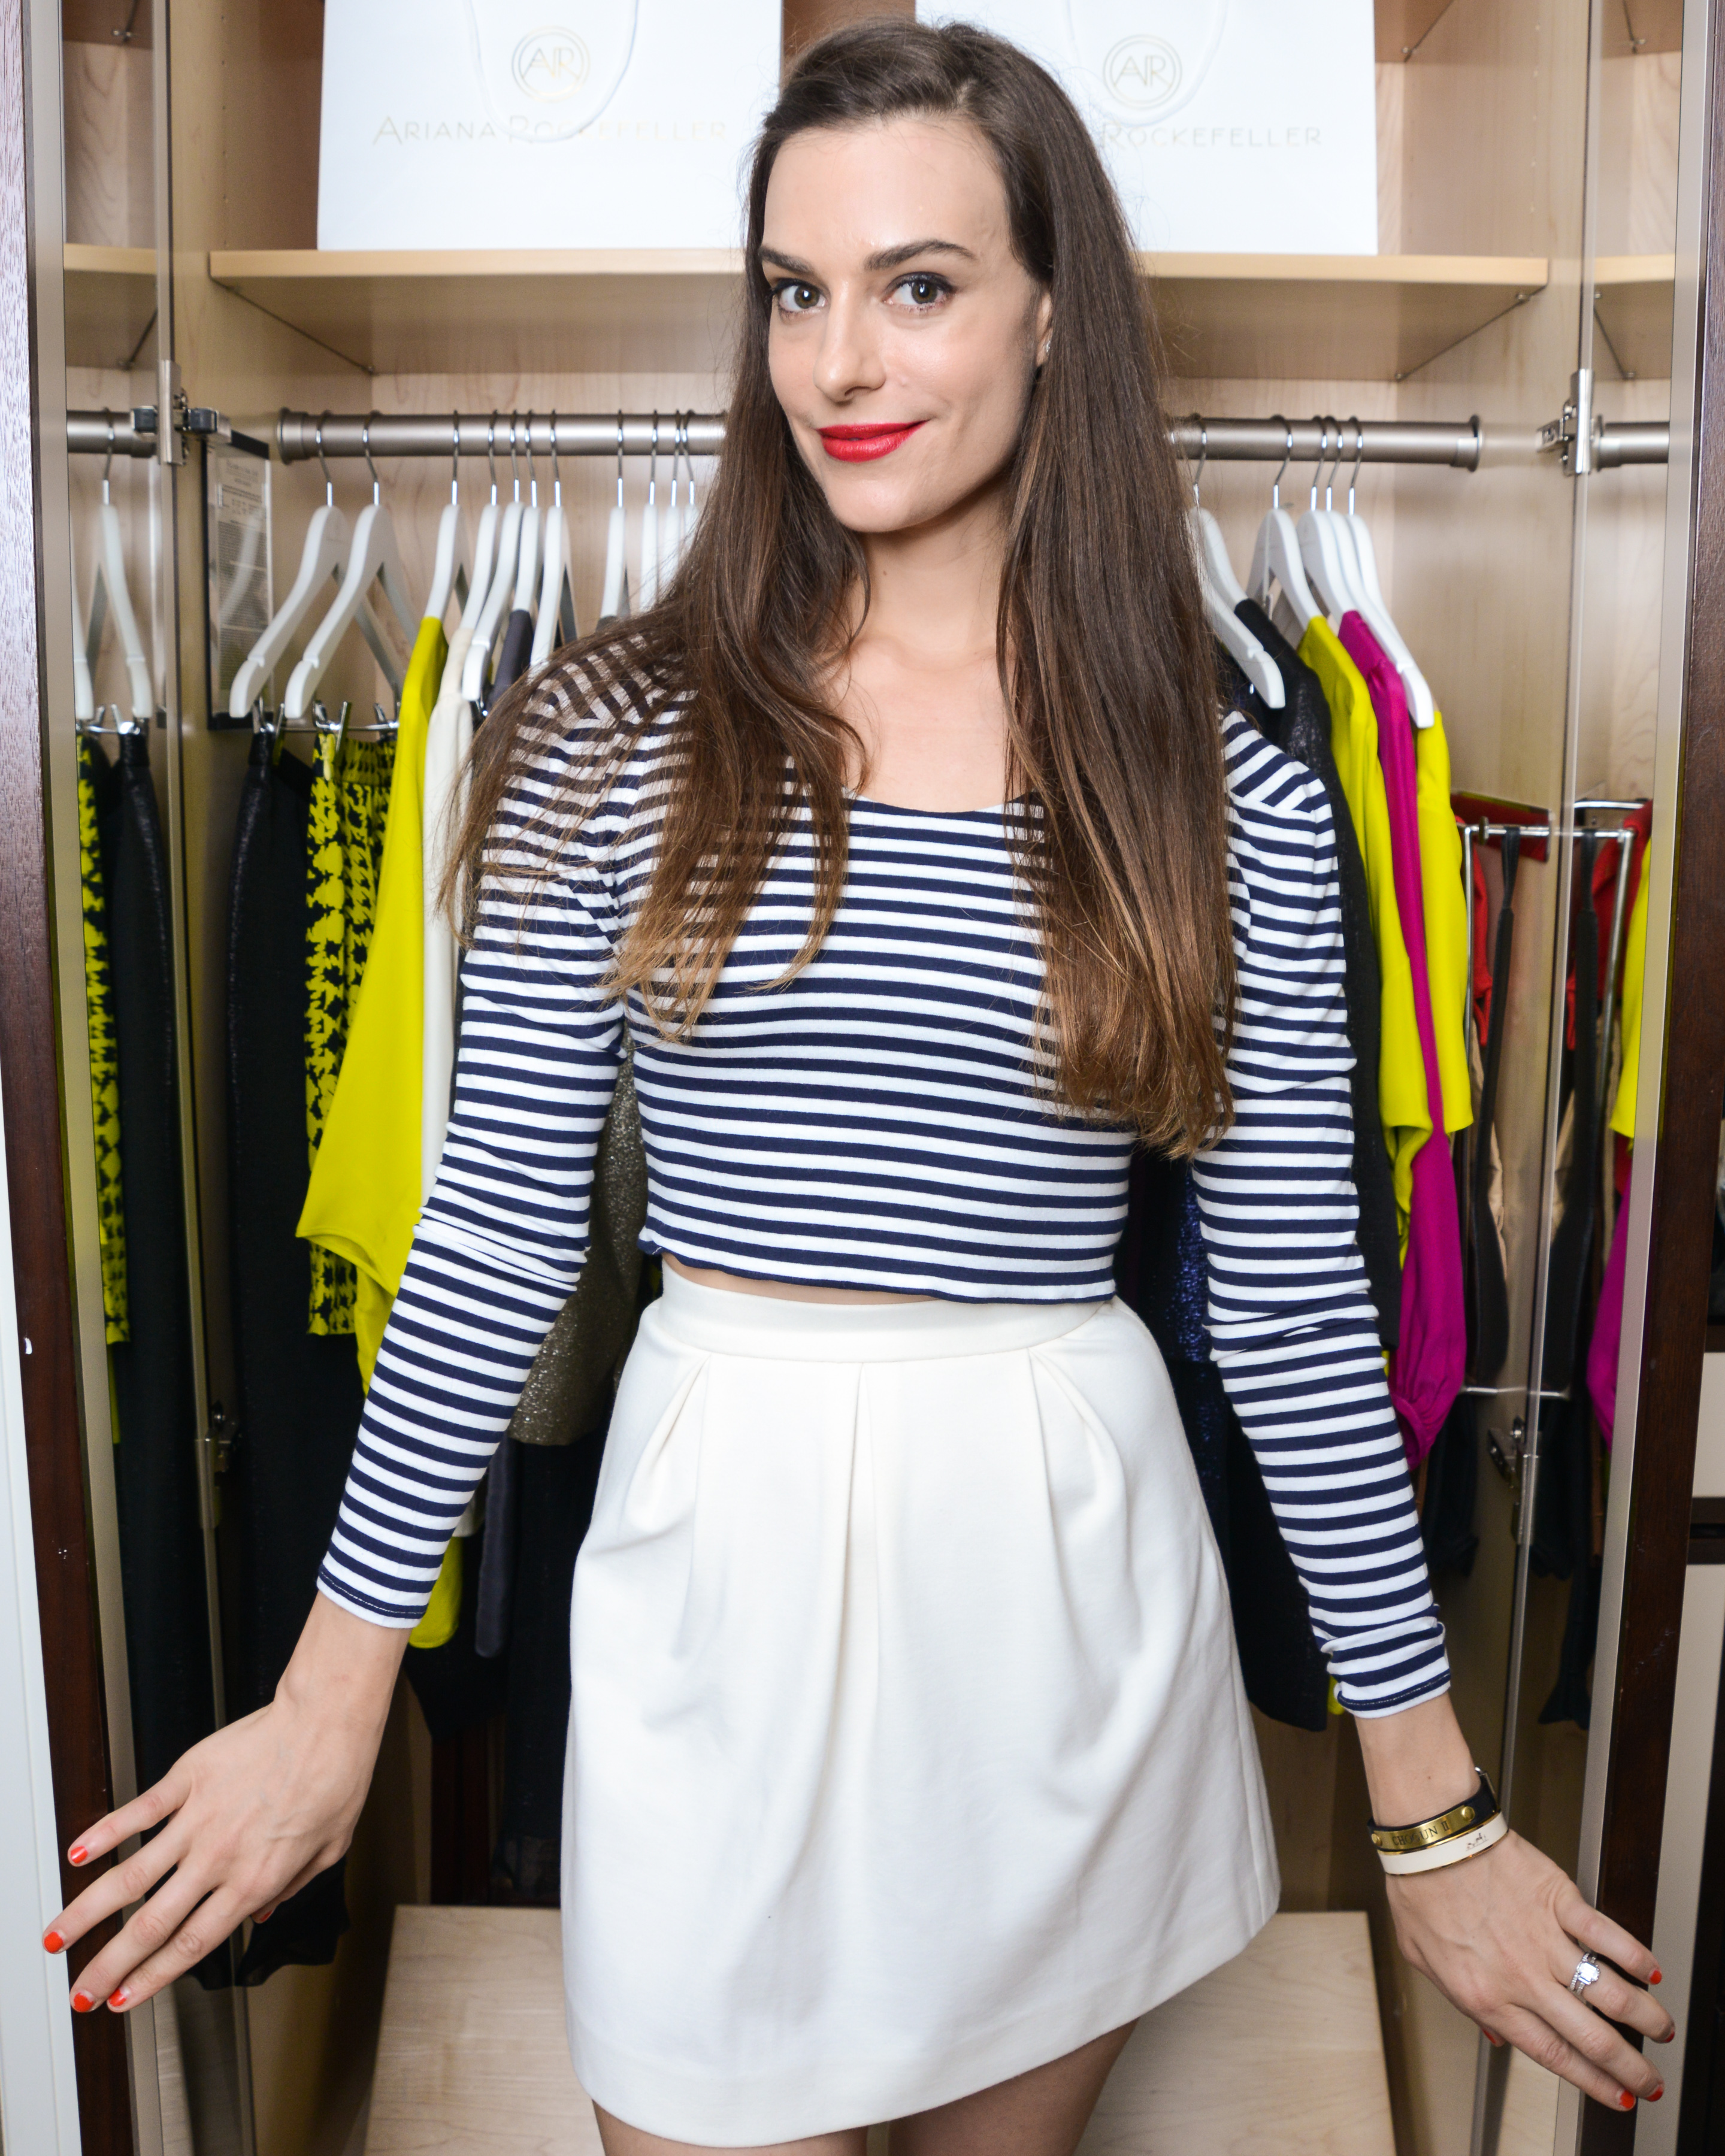 Ariana Rockefeller On Her Spring Collection And Her First ...